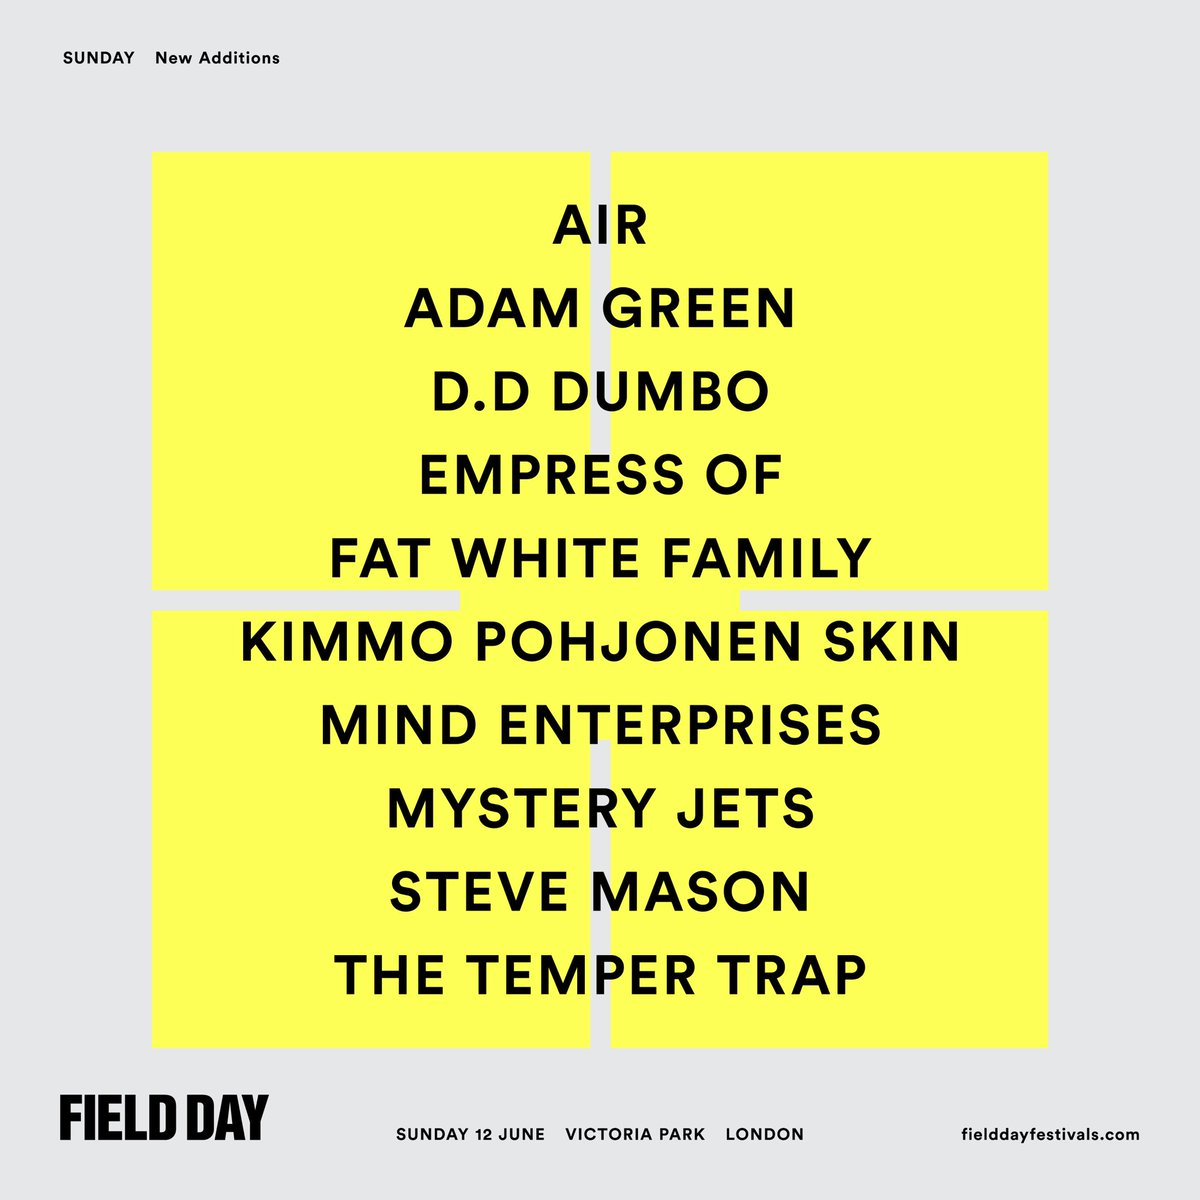 More additions to Field Day Sunday!  RT to win 2x VIP weekend tickets!  https://t.co/pHX0wnaJl8   #FieldDayis10 https://t.co/tKE7t7ydJj